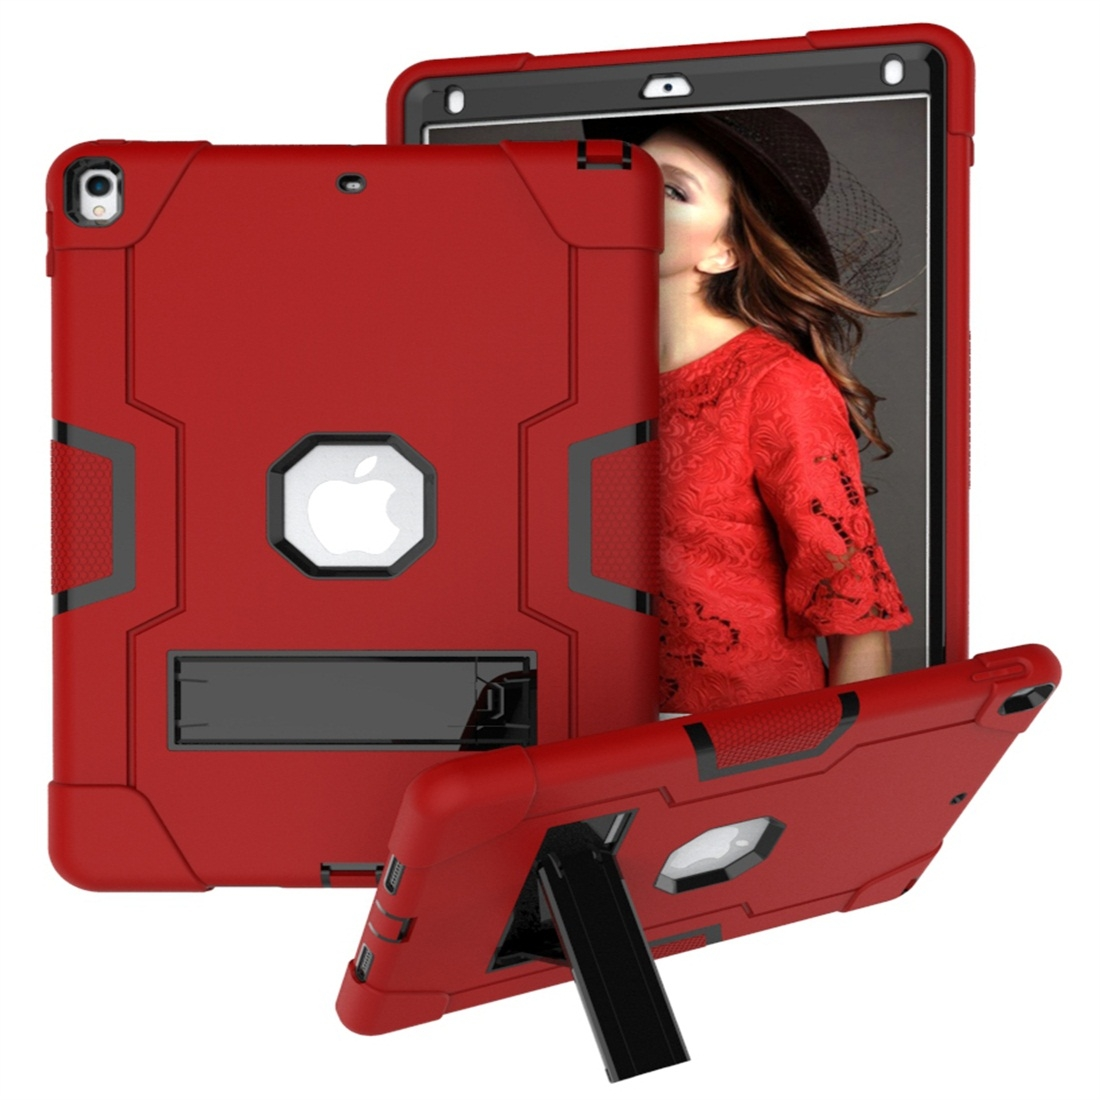 iPad 10.5 Case Contrasting Color Tough Durable Armor Case (Red/Black)